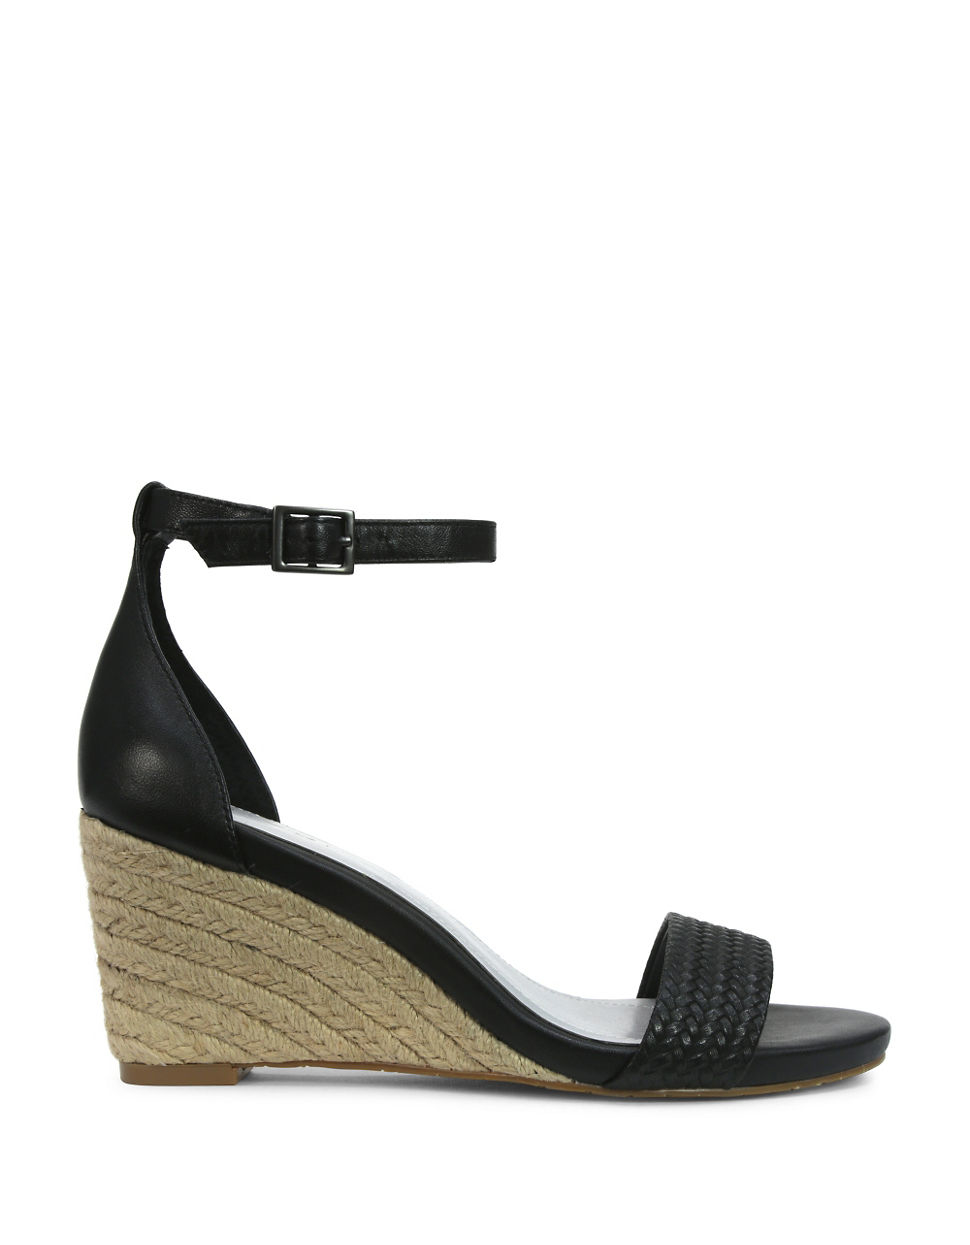 tahari florence leather wedge sandals in black lyst